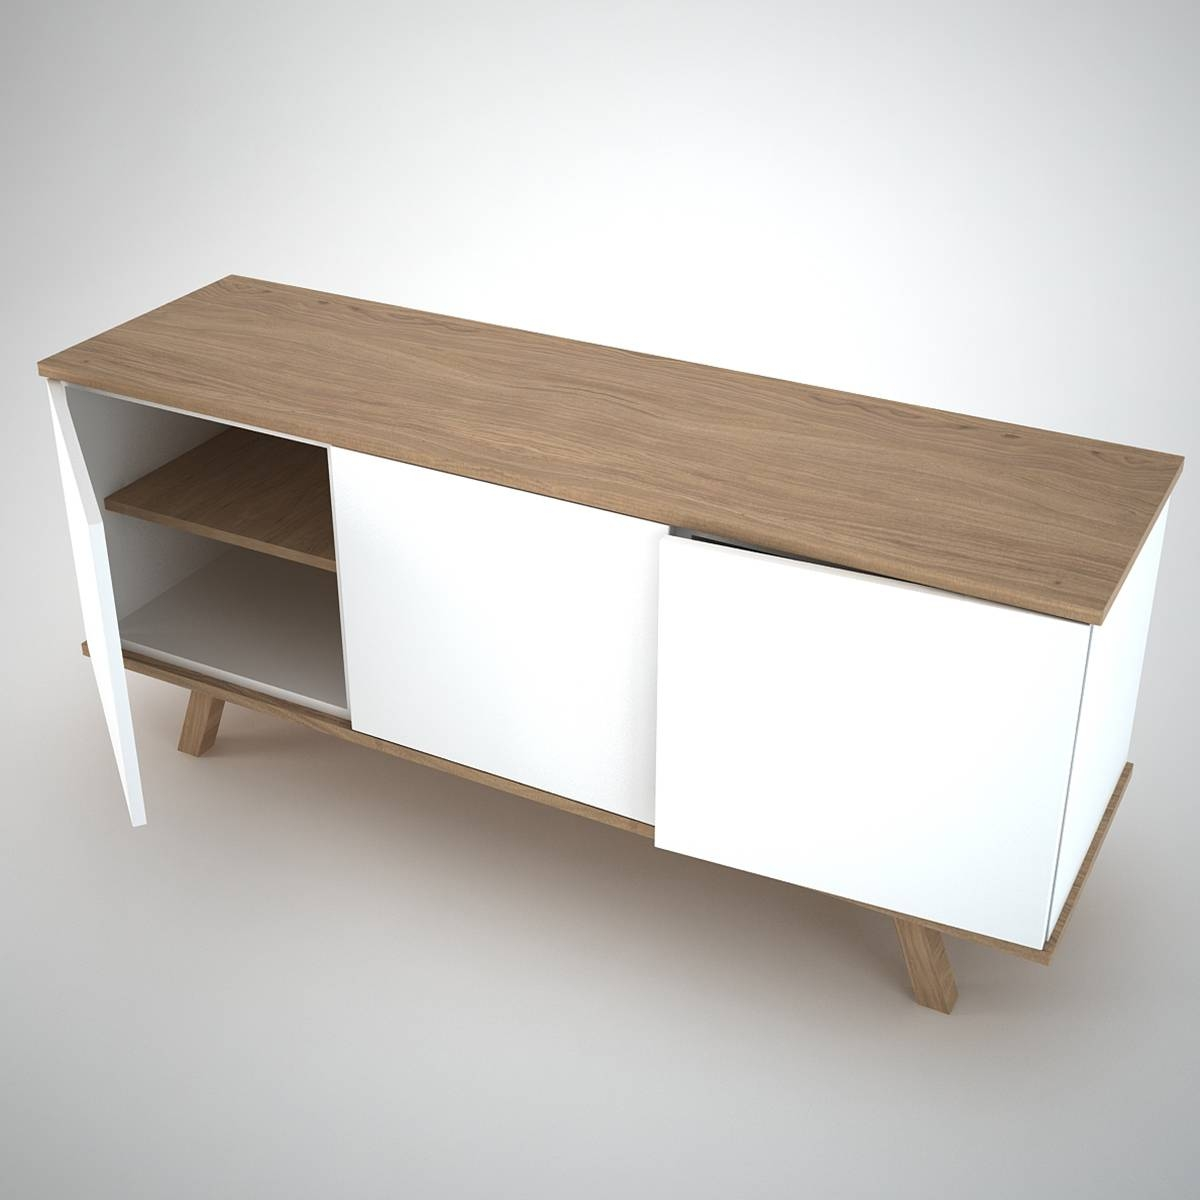 Ottawa Sideboard (3) White – Join Furniture Intended For White And Wood Sideboards (#5 of 15)